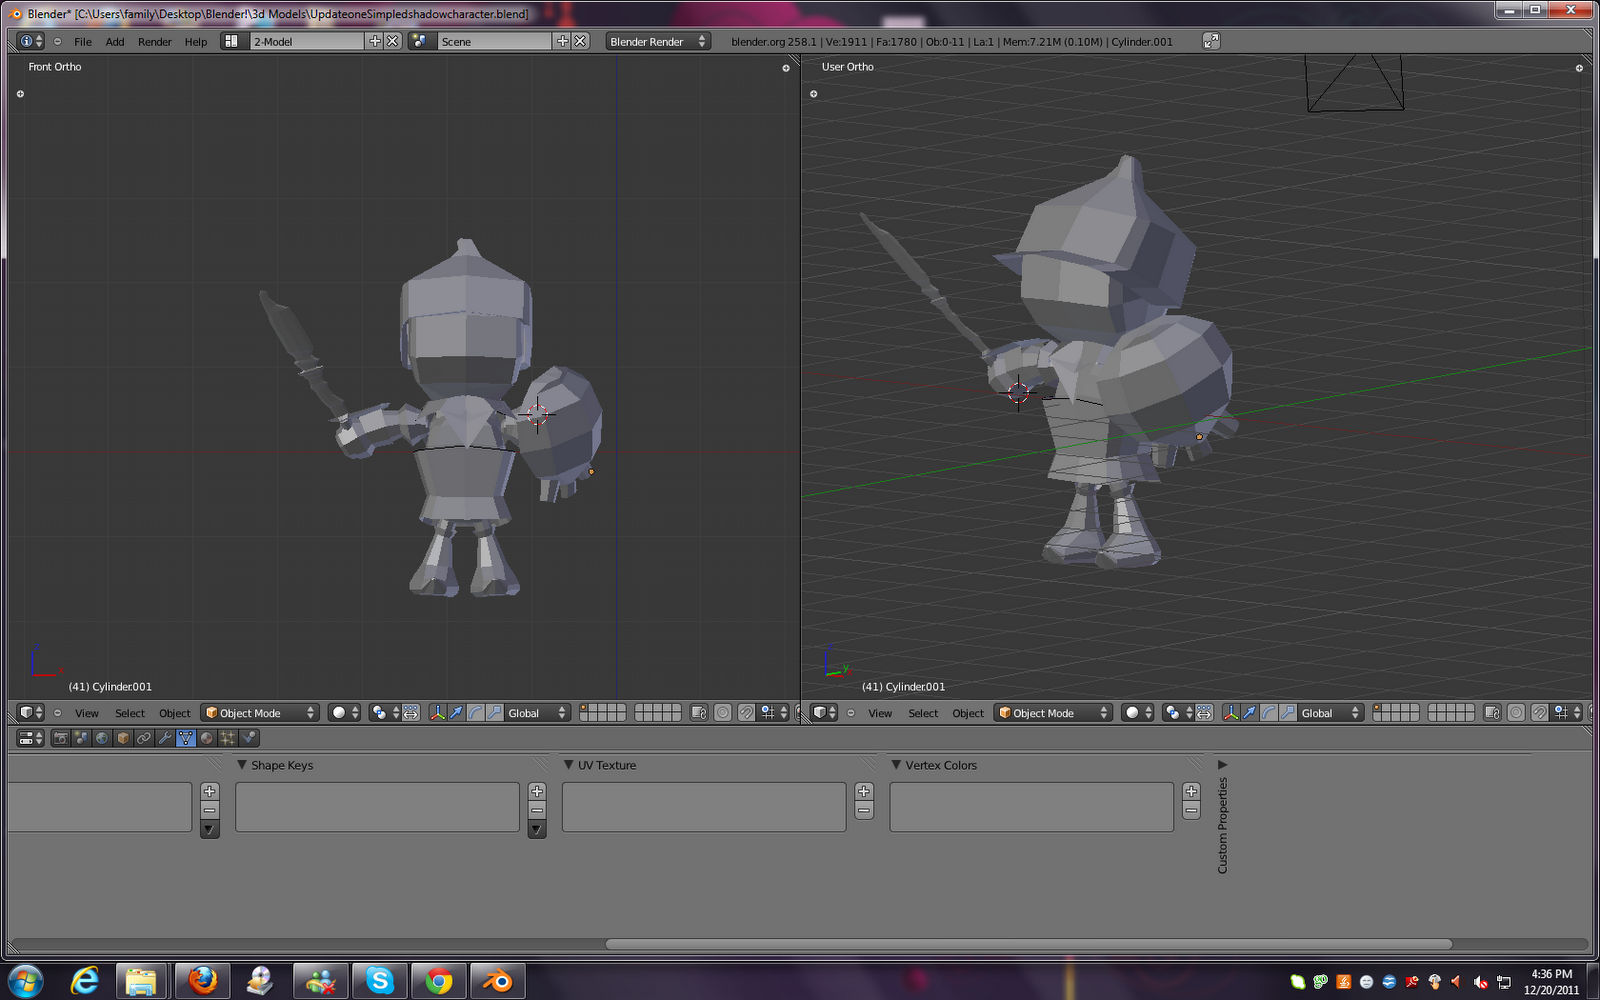 Game Character Modeling In Blender : Samer khatib s dev snowconesolid early d modeling